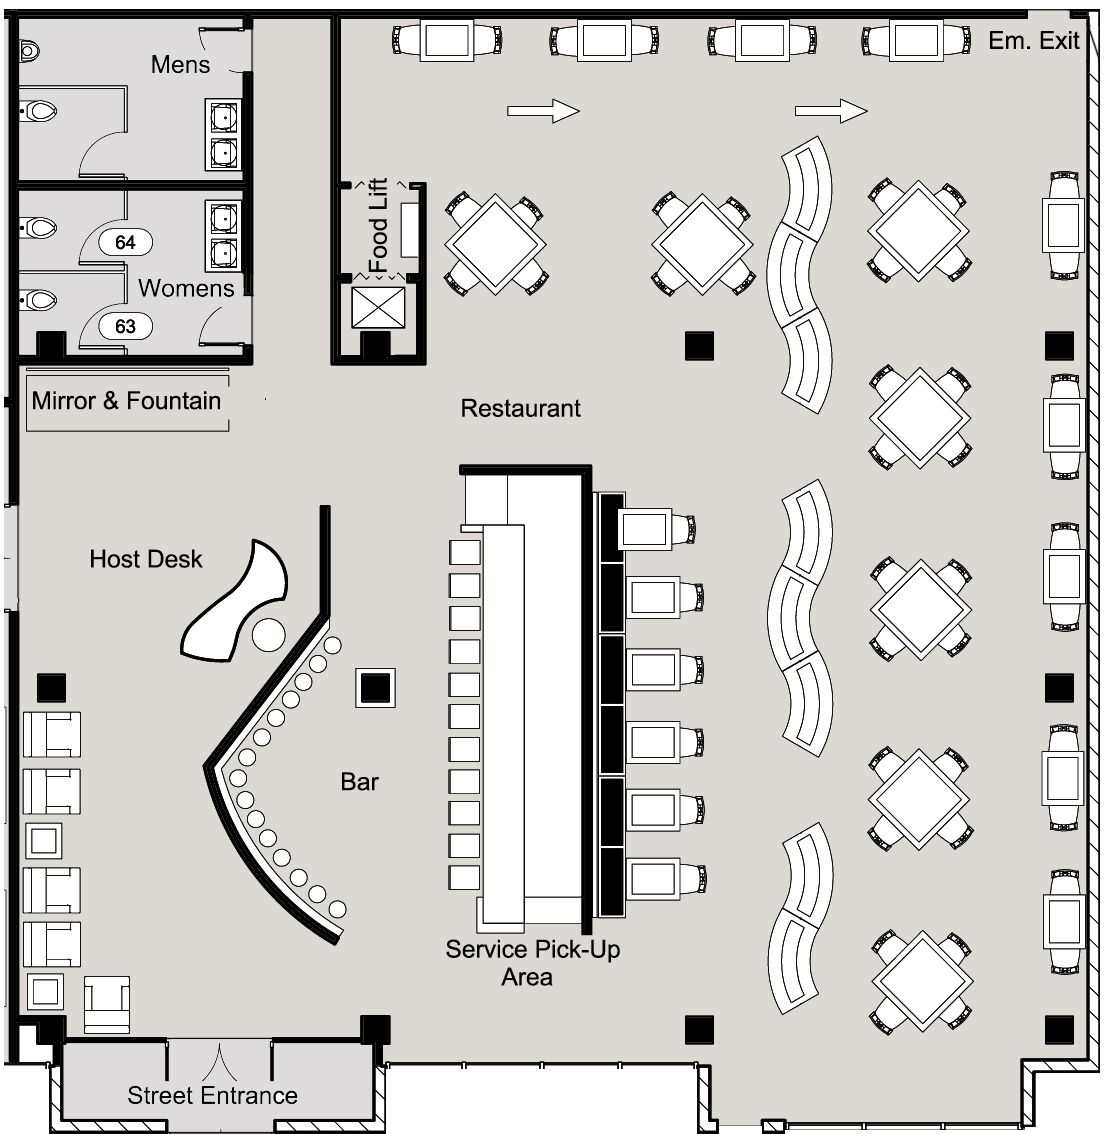 Architectural Floor / Space Plans by Jack Patterson at Coroflot. | floor plans - 2019 ...